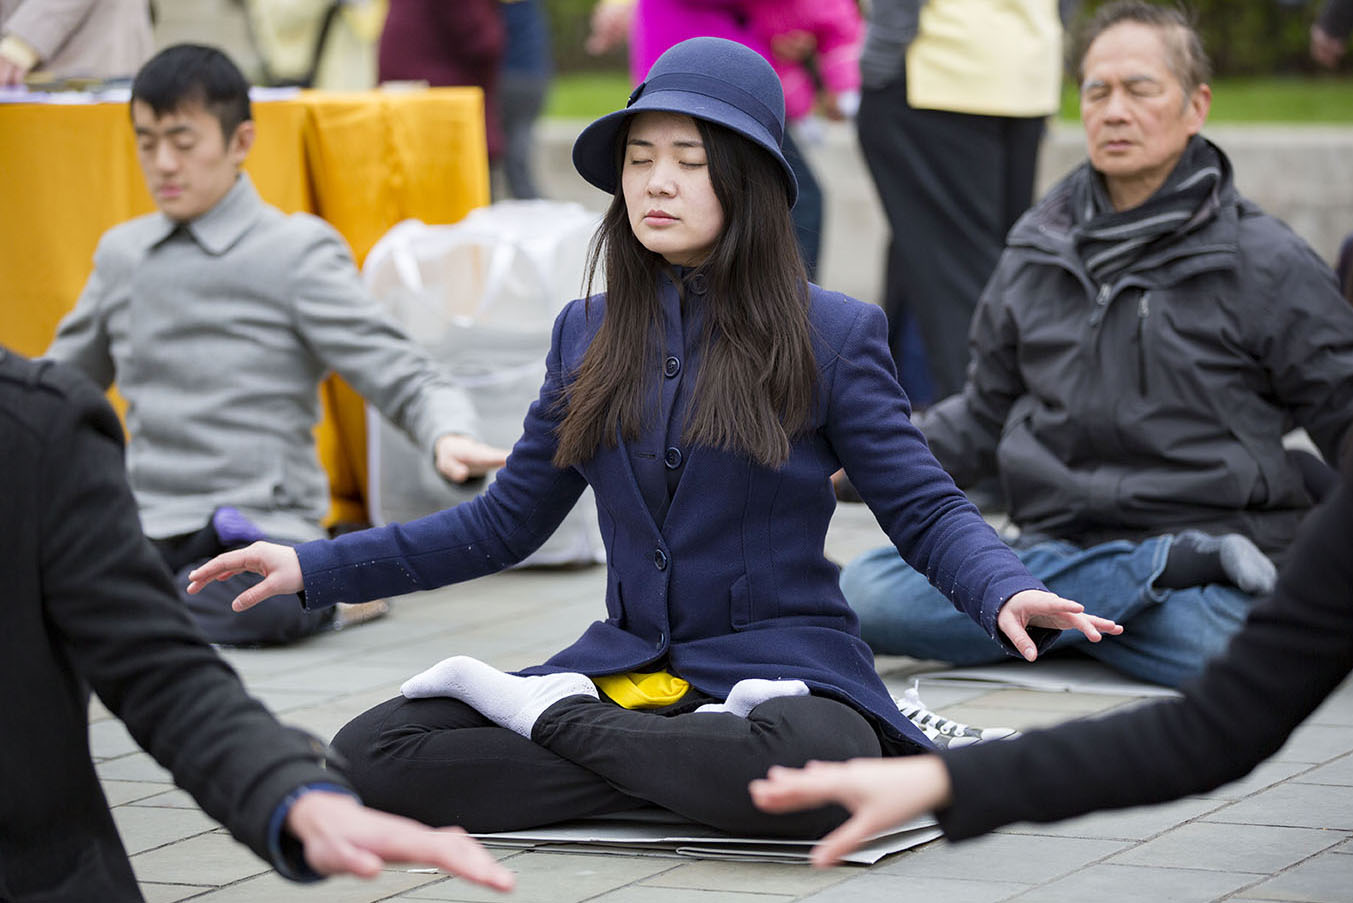 24th April 2016 the peaceful appeal against the persecution of Falun Gong continues